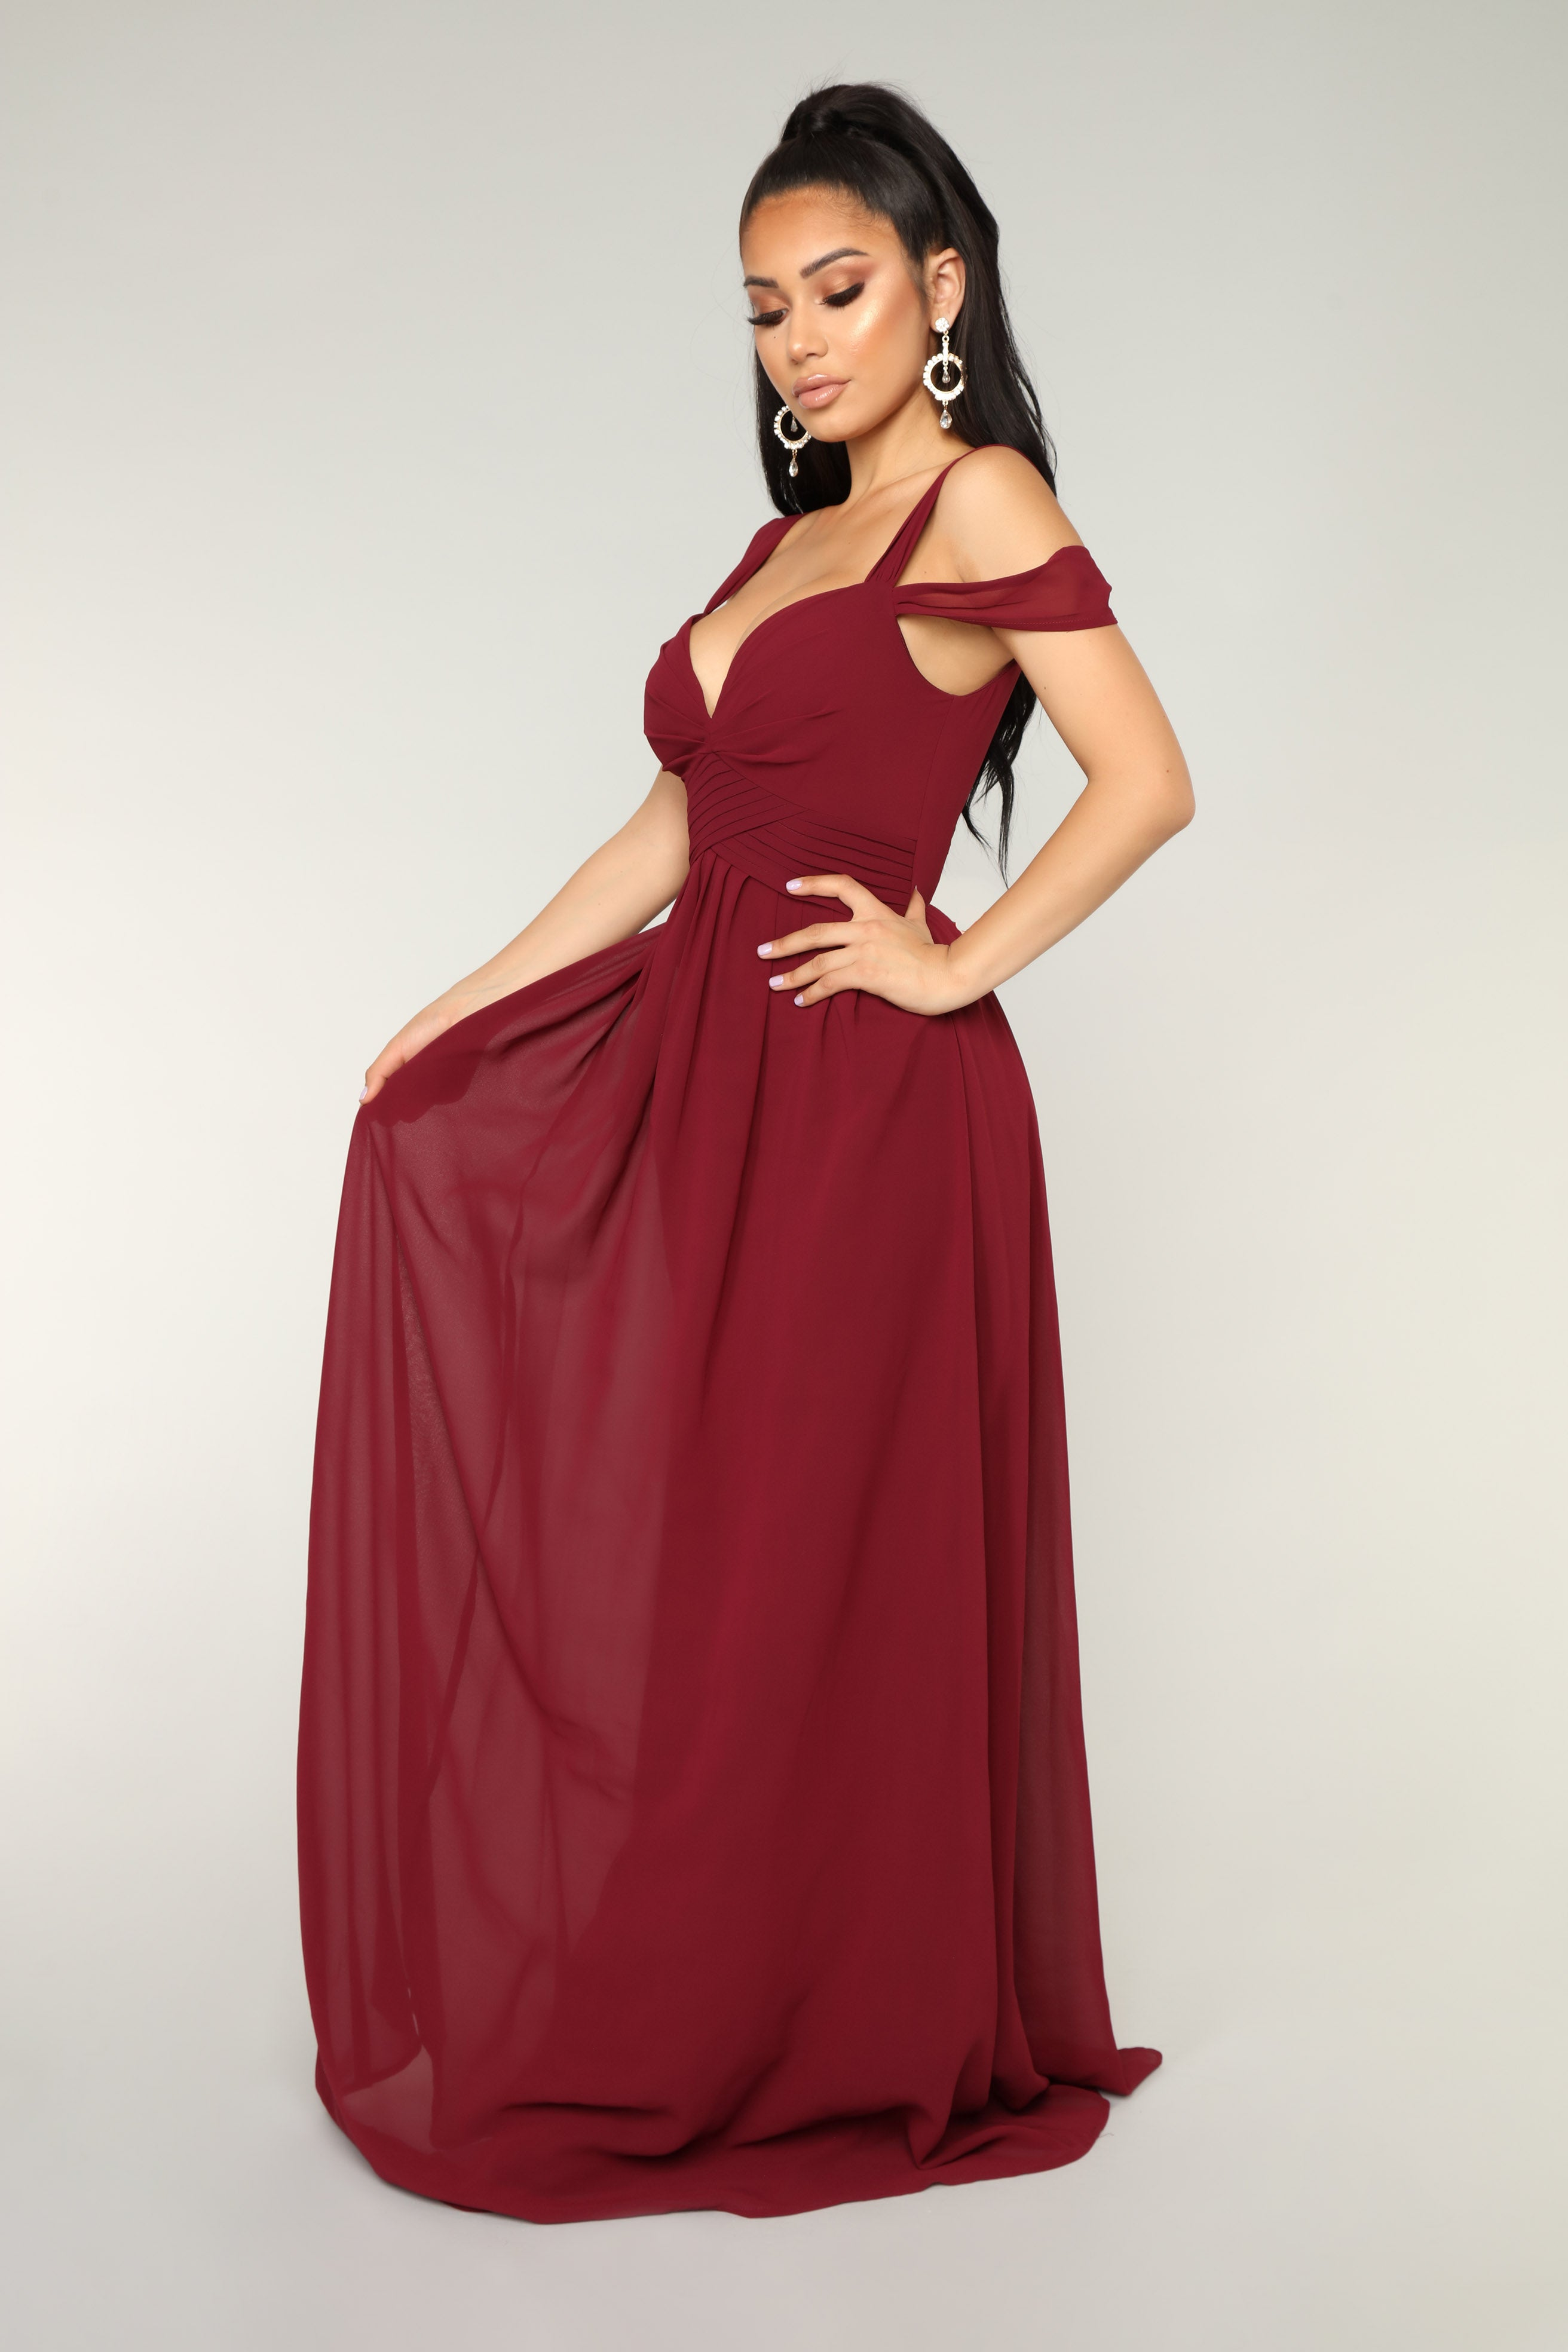 0d8b9580b06 Honorable Intentions Dress - Wine